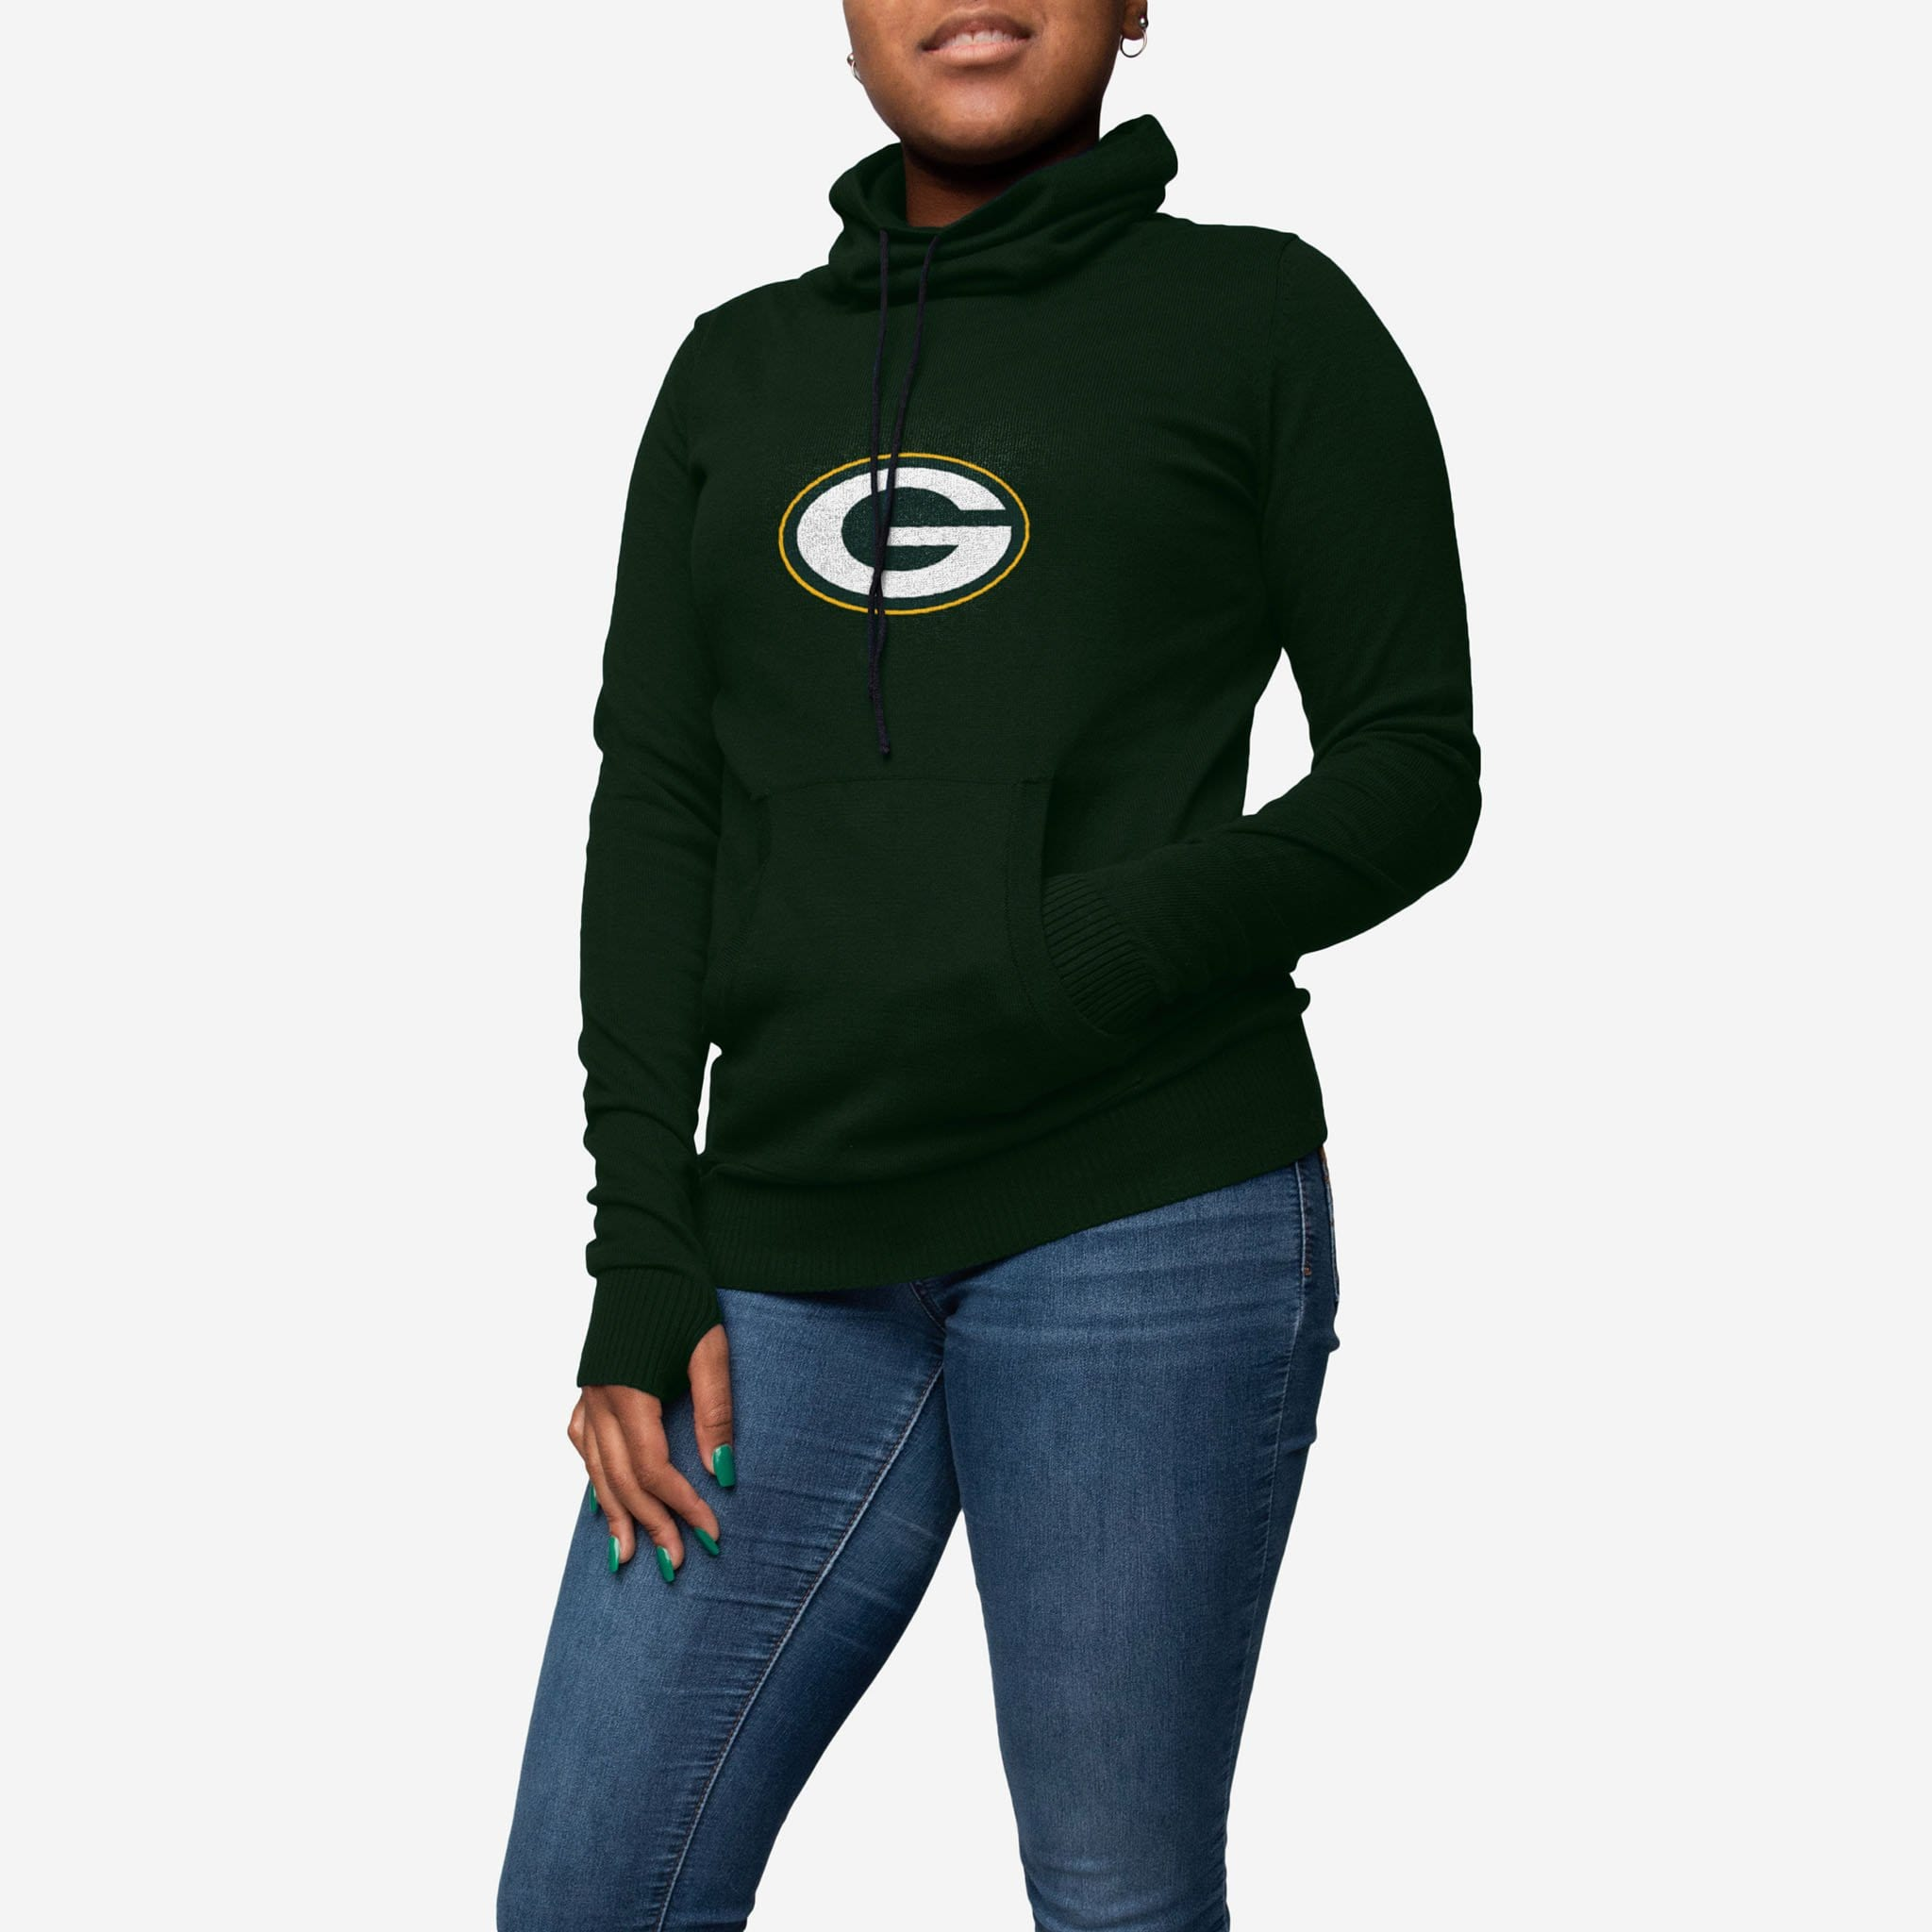 86b6c2f9687 Green Bay Packers Womens Cowl Neck Sweater FOCO - FOCO.com